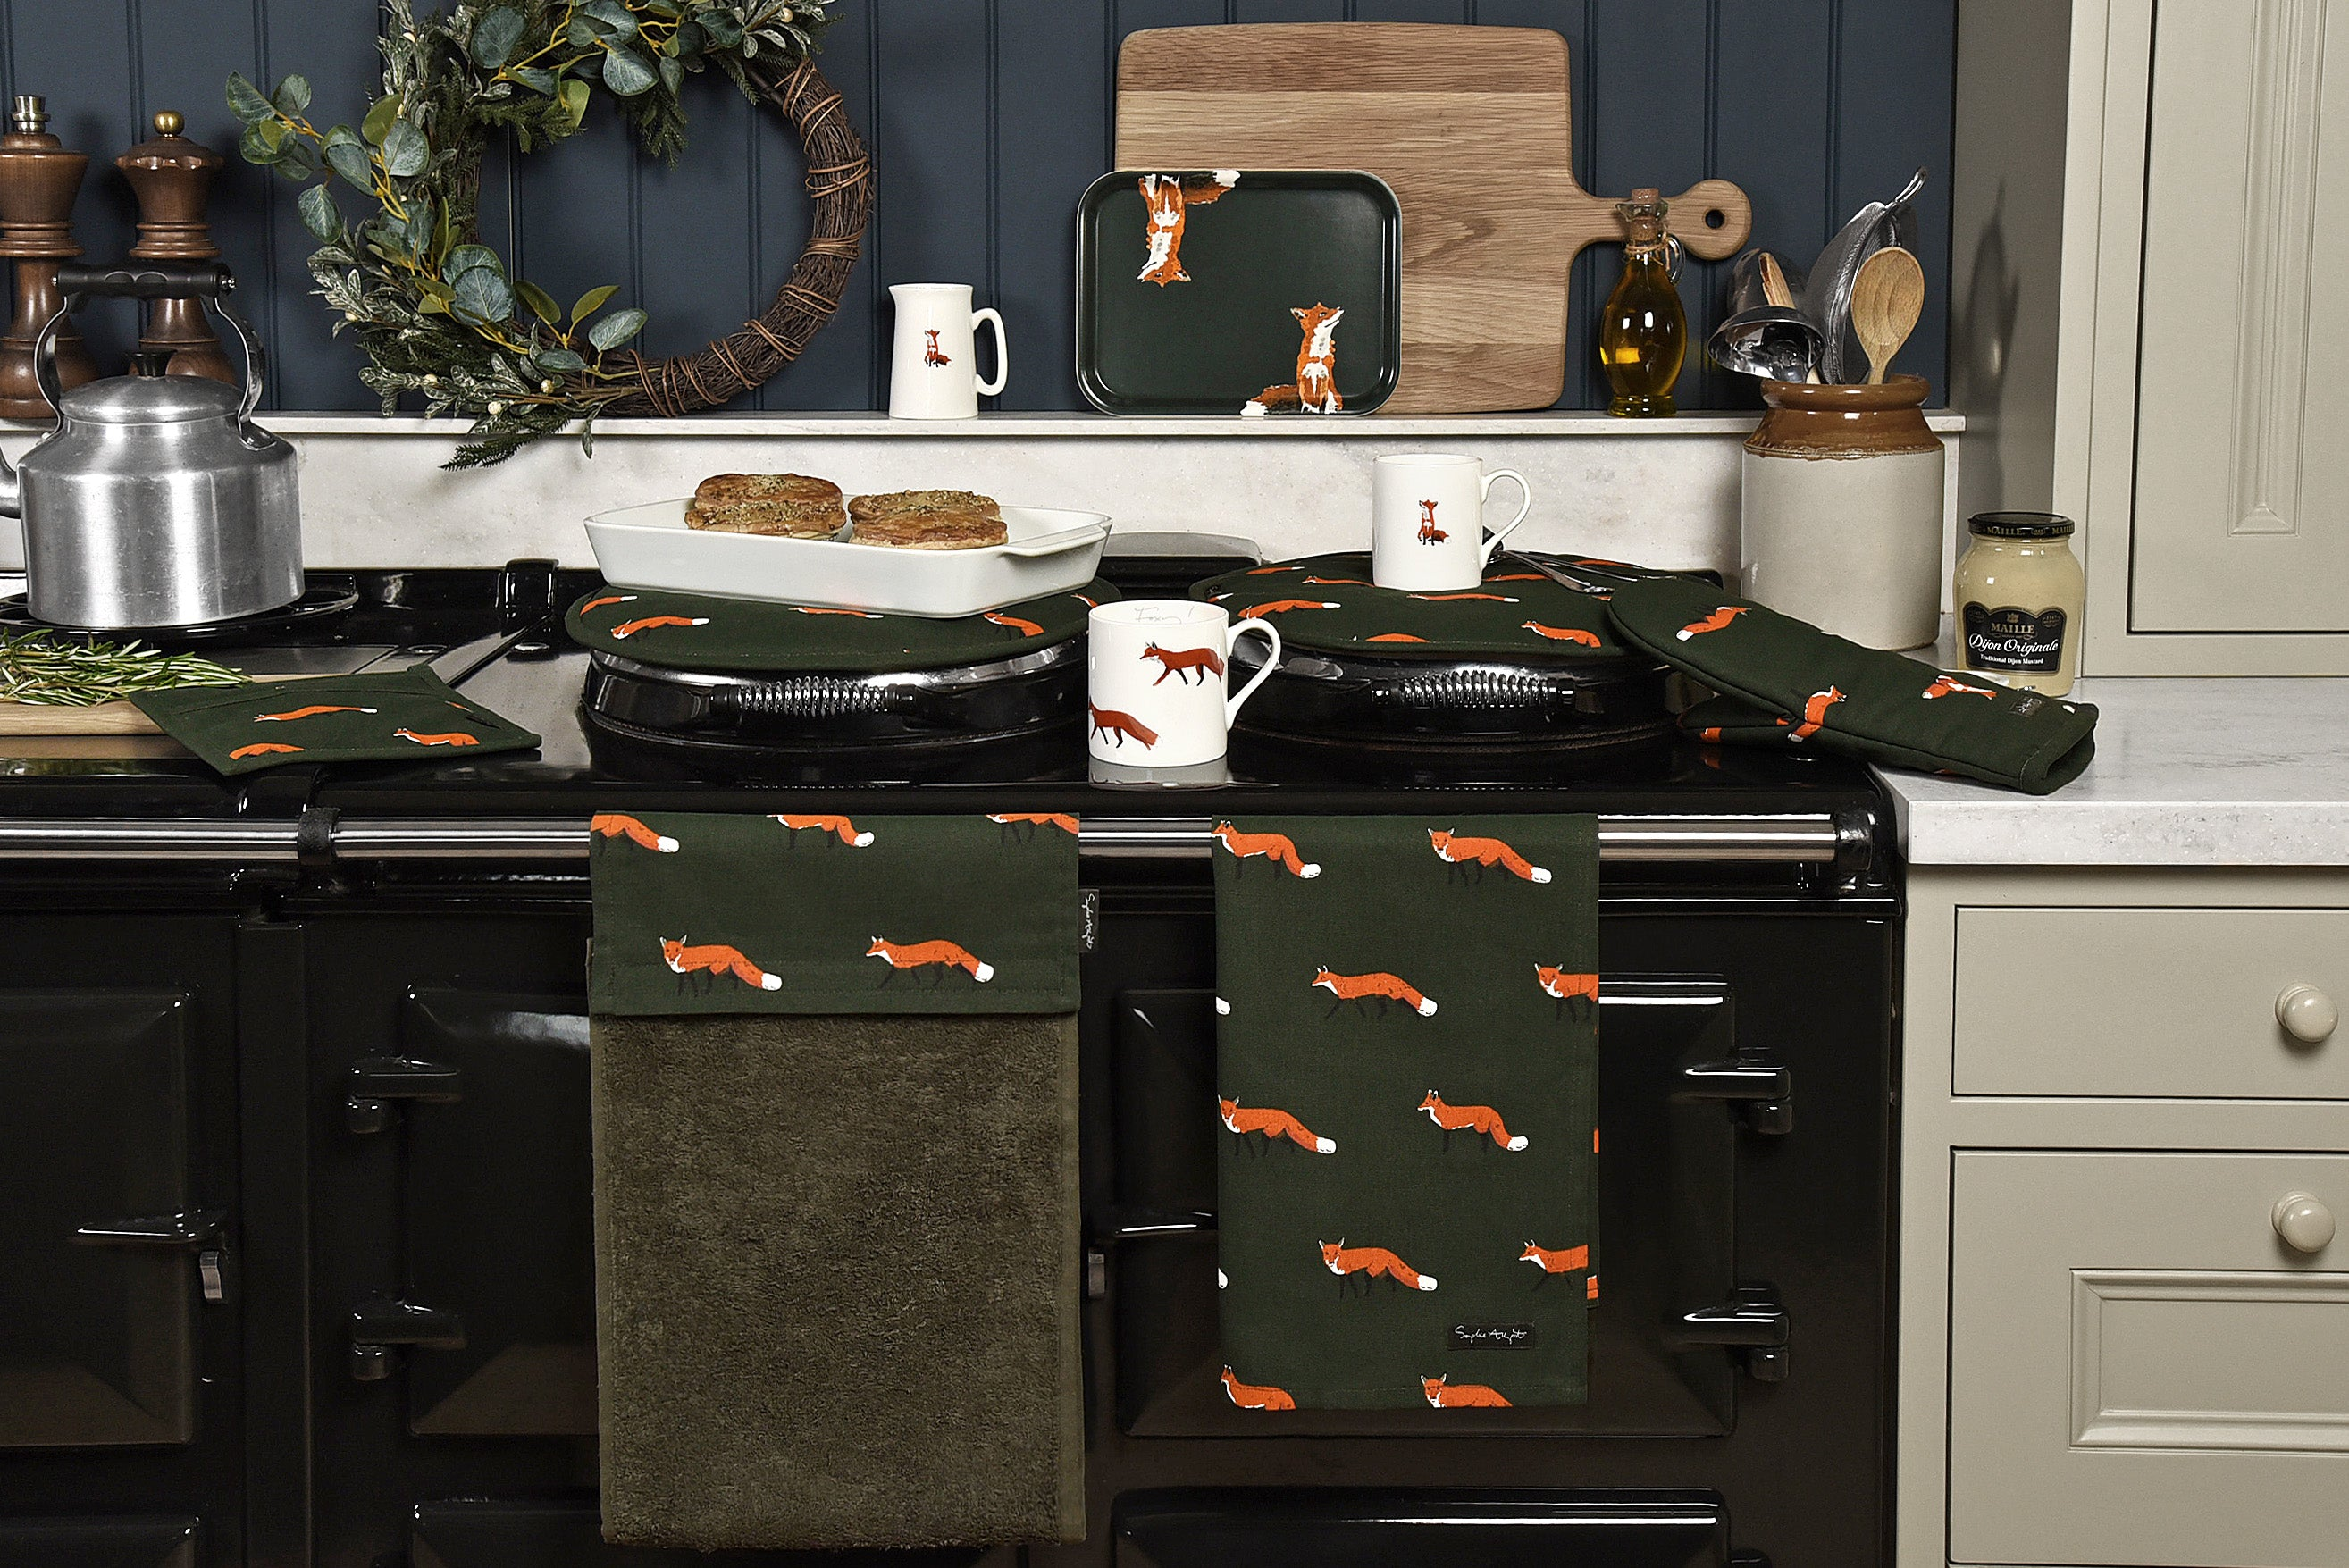 Kitchen decor ideas for autumn, add forest greens and oranges to cooker or AGA